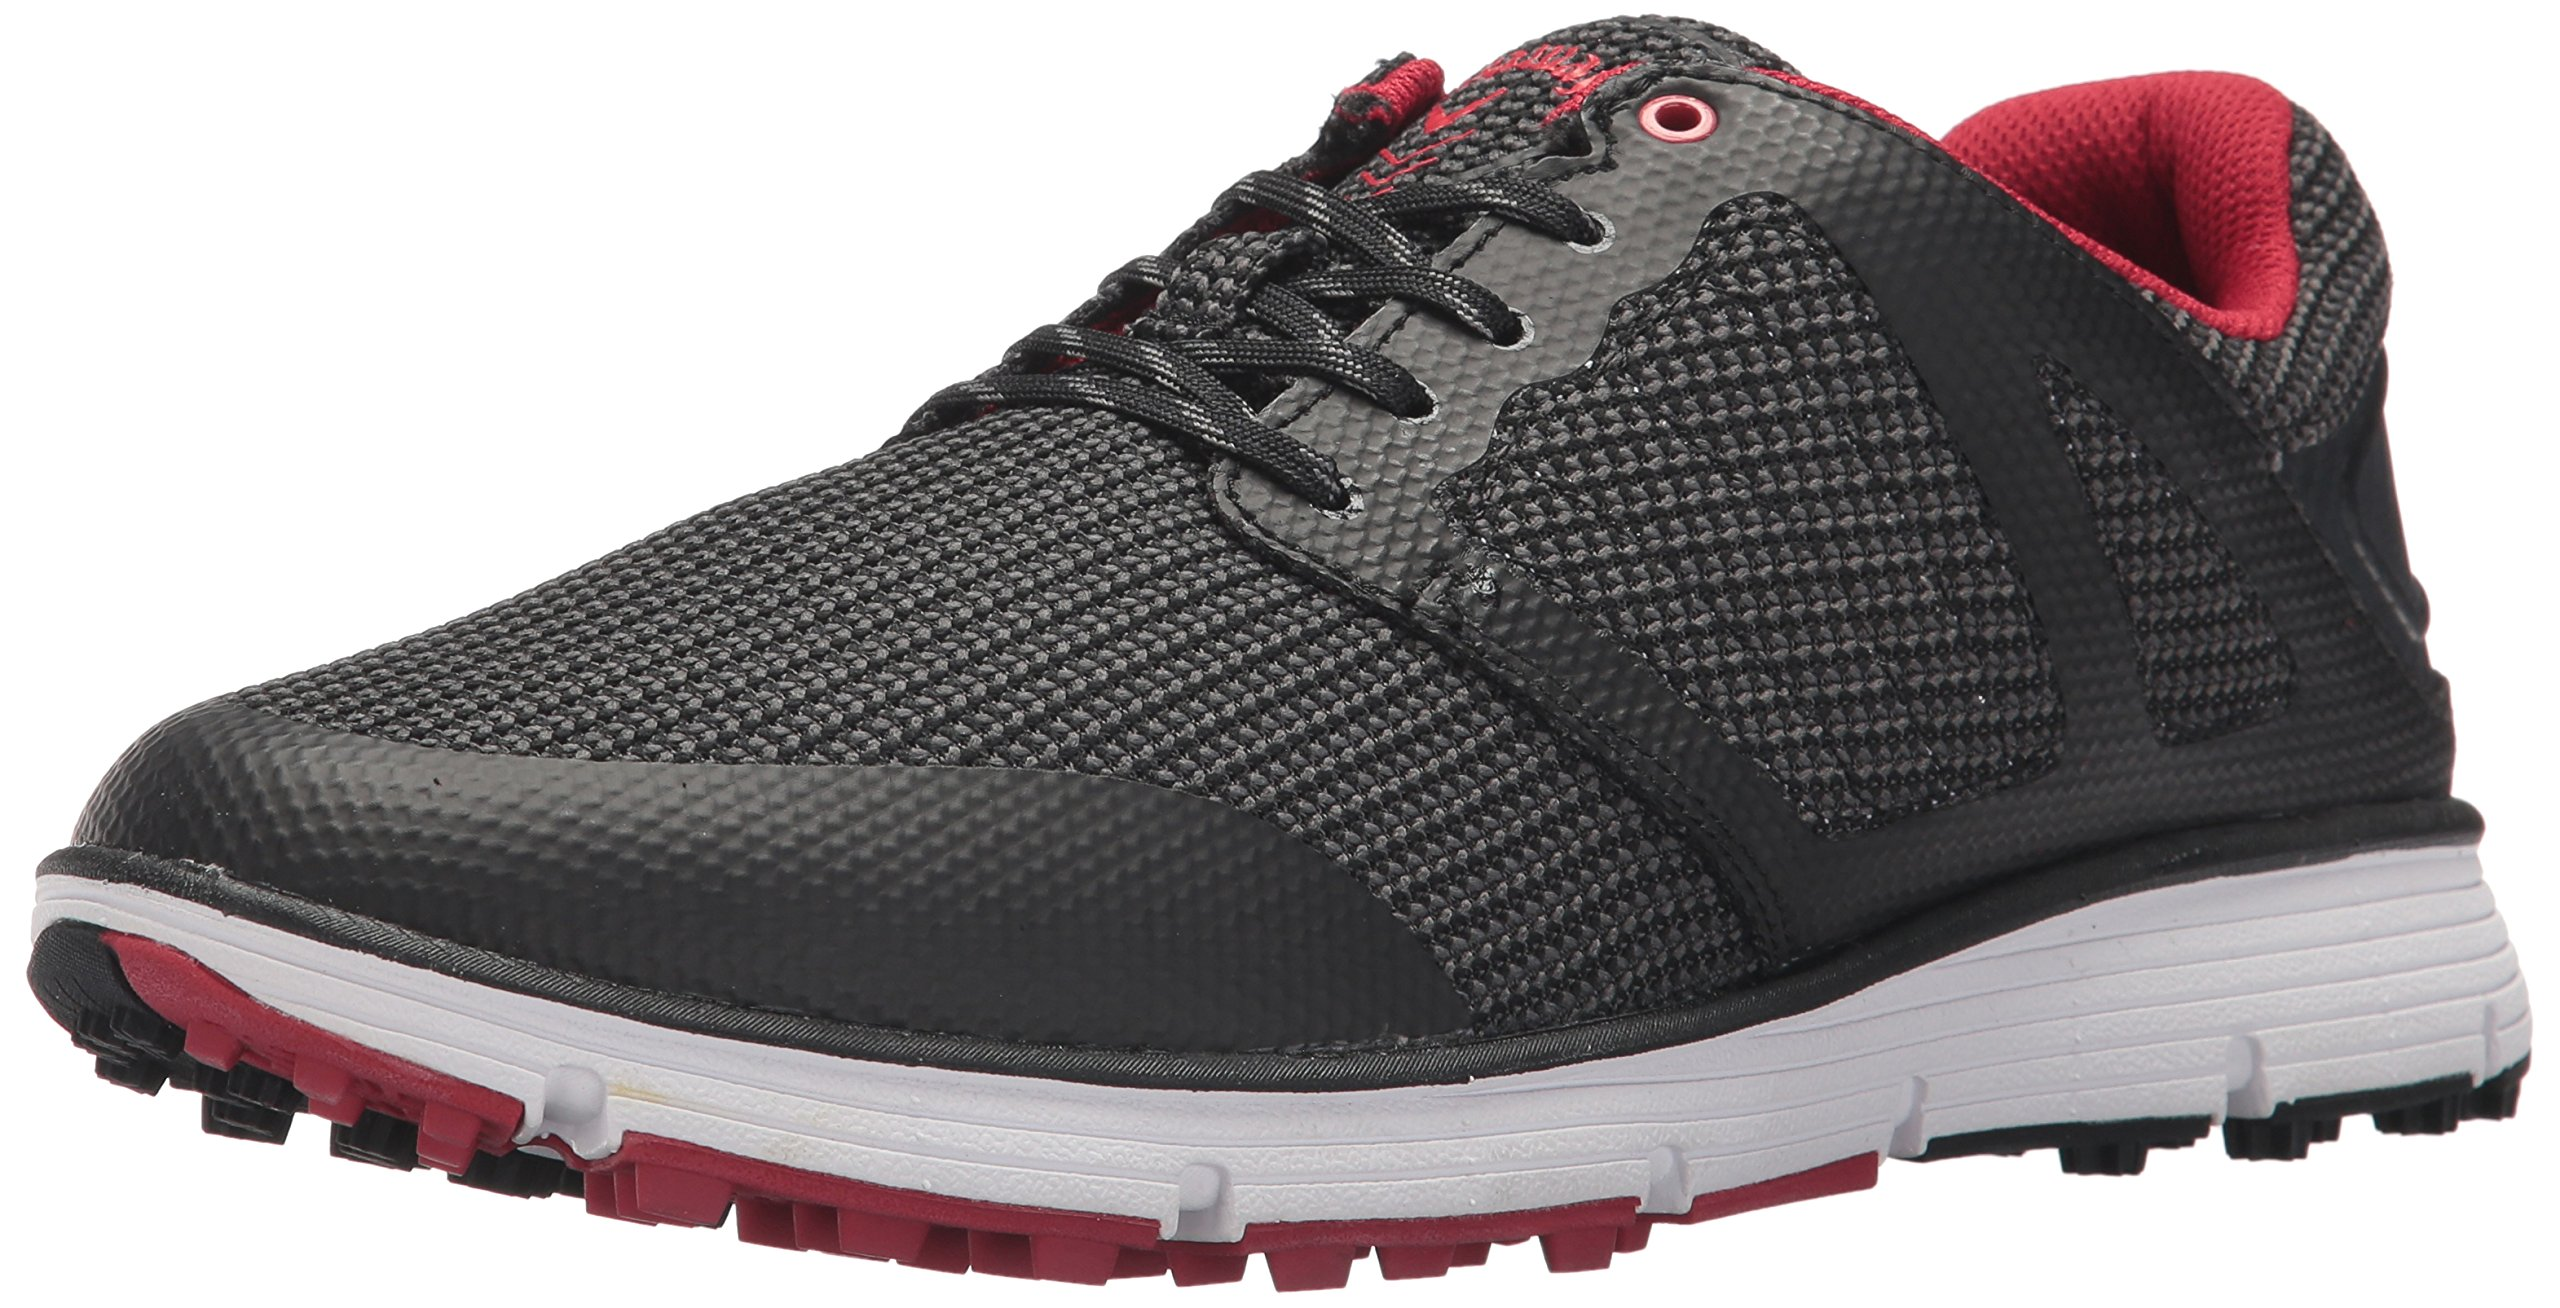 Callaway Men's Balboa Vent 2.0 Golf Shoe, Black/White/red, 10.5 M US by Callaway